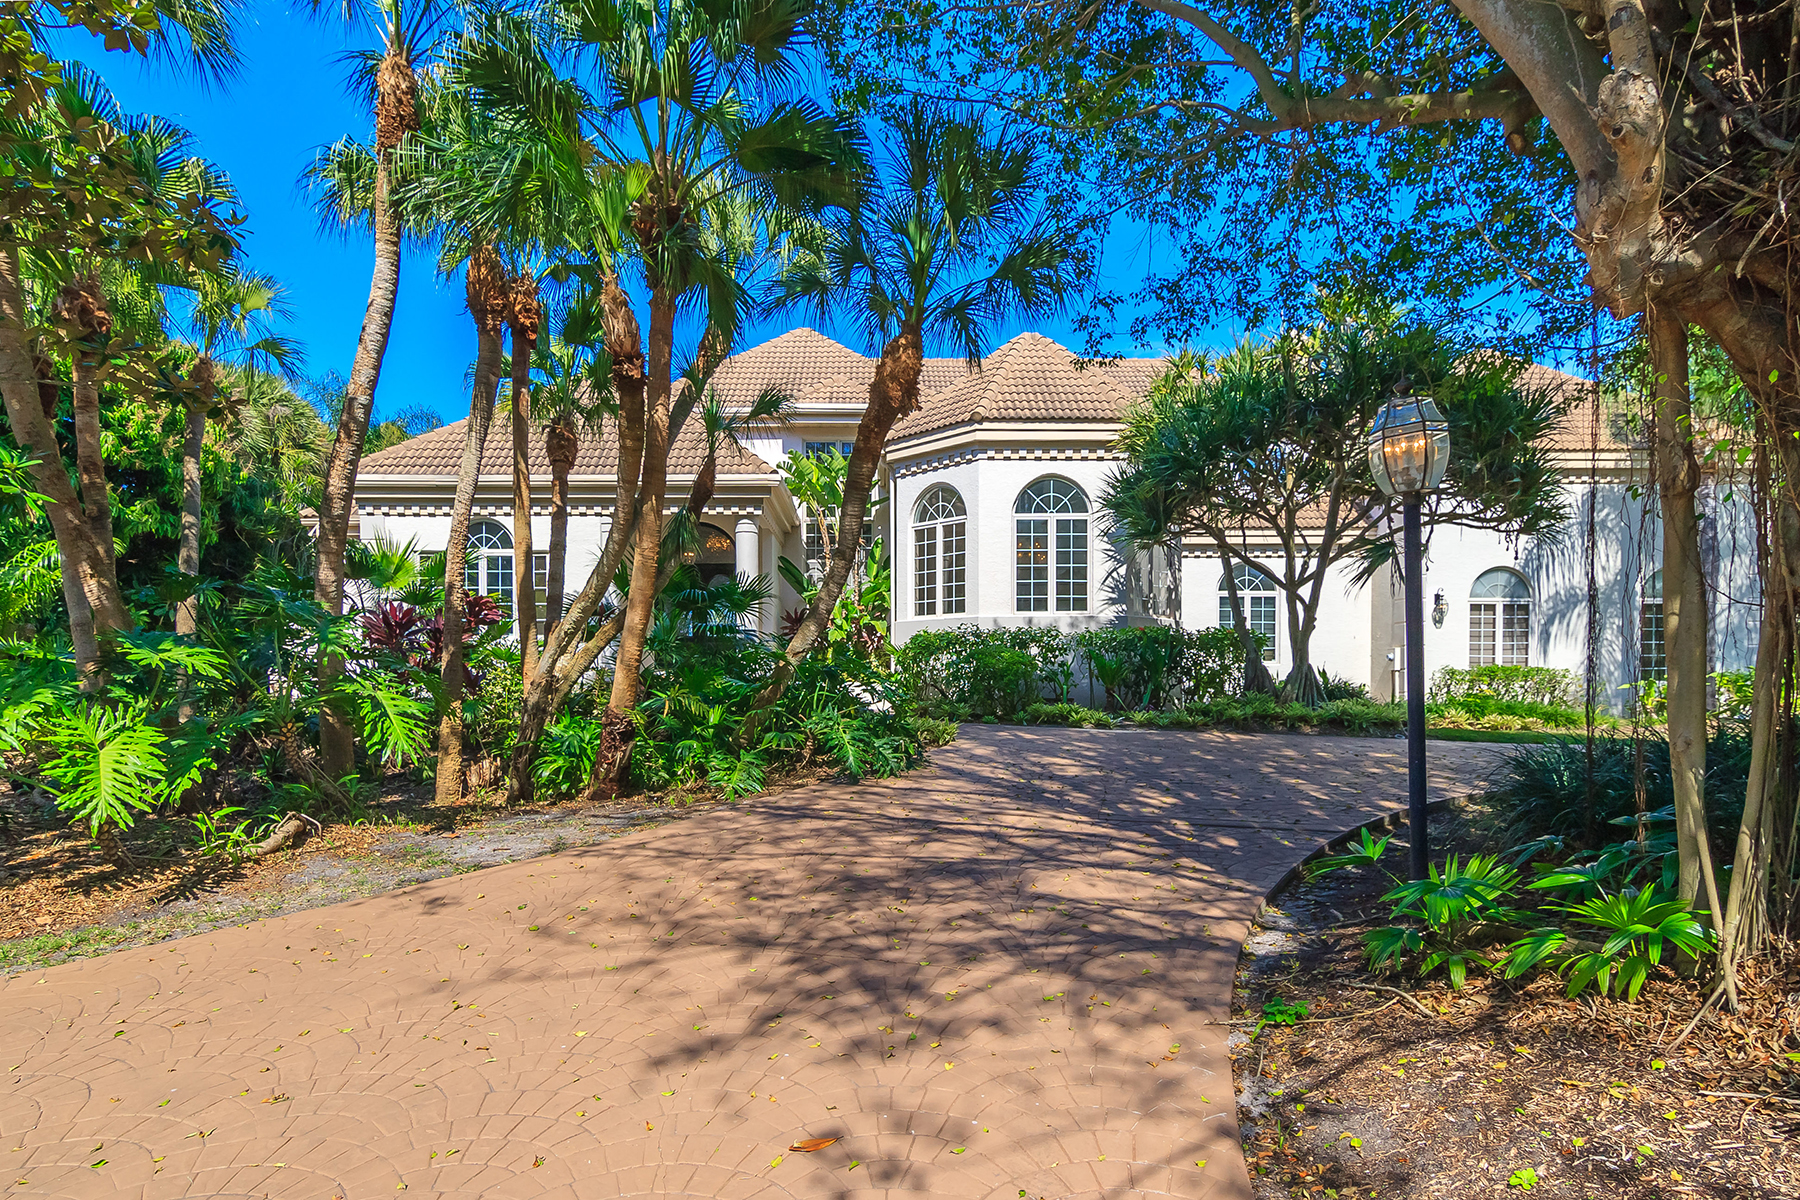 Casa Unifamiliar por un Venta en BAY ISLES - LONGBOAT KEY 501 Harbor Point Rd Longboat Key, Florida, 34228 Estados Unidos